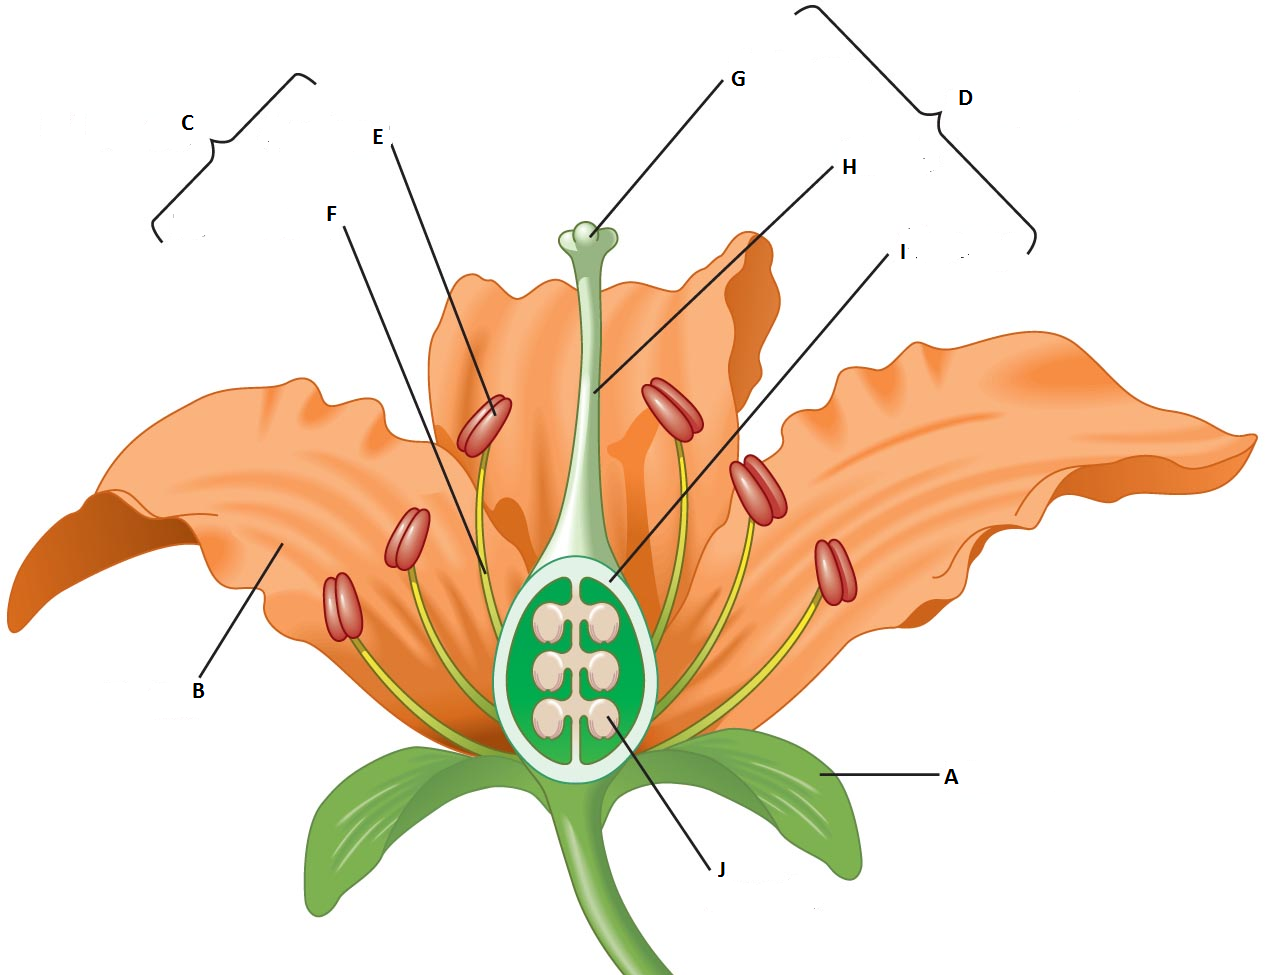 medium resolution of diagram quiz on flower parts biology multiple choice quizzes png 1265x975 unlabeled pollination diagram